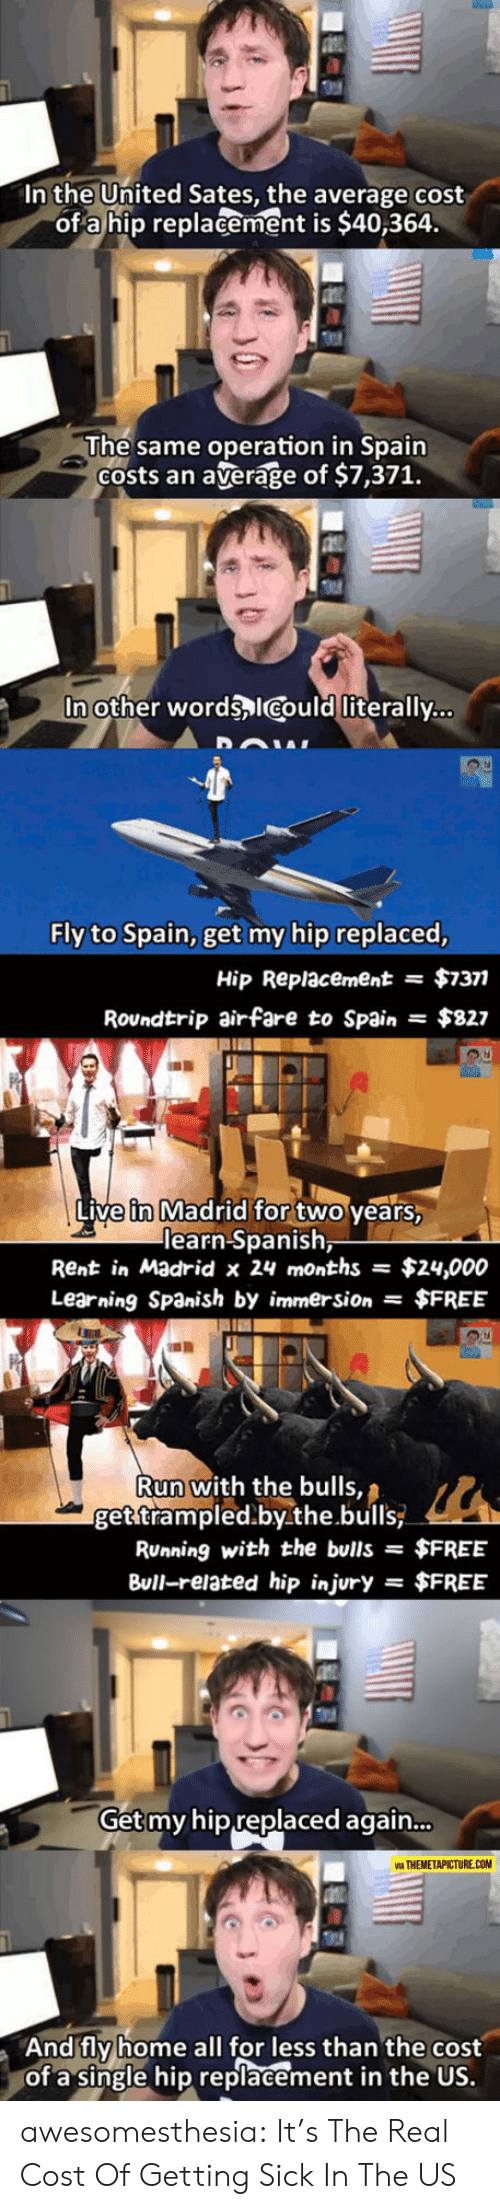 themetapicture: In the United Sates, the average cost  of a hip replacement is $40,364.  The same operation in Spain  Costs an  average of $7,371.  In other words ICould literally...  Fly to Spain, get my hip replaced,  $7377  Hip Replacement  =  Roundtrip airfare to Spain  $827  Live in Madrid for two years,  learn Spanish,  Rent in Madrid x 24 months  $24,000  Learning Spanish by immersion $FREE  Run with the bulls,  get trampled.by.the.bulls  RUnning with the bulls =  $FREE  Bull-related hip injury  $FREE  =  Get my hip replaced again...  VIA THEMETAPICTURE.COM  And fly home all for less than the cost  of a single hip replacement in the US. awesomesthesia:  It's The Real Cost Of Getting Sick In The US